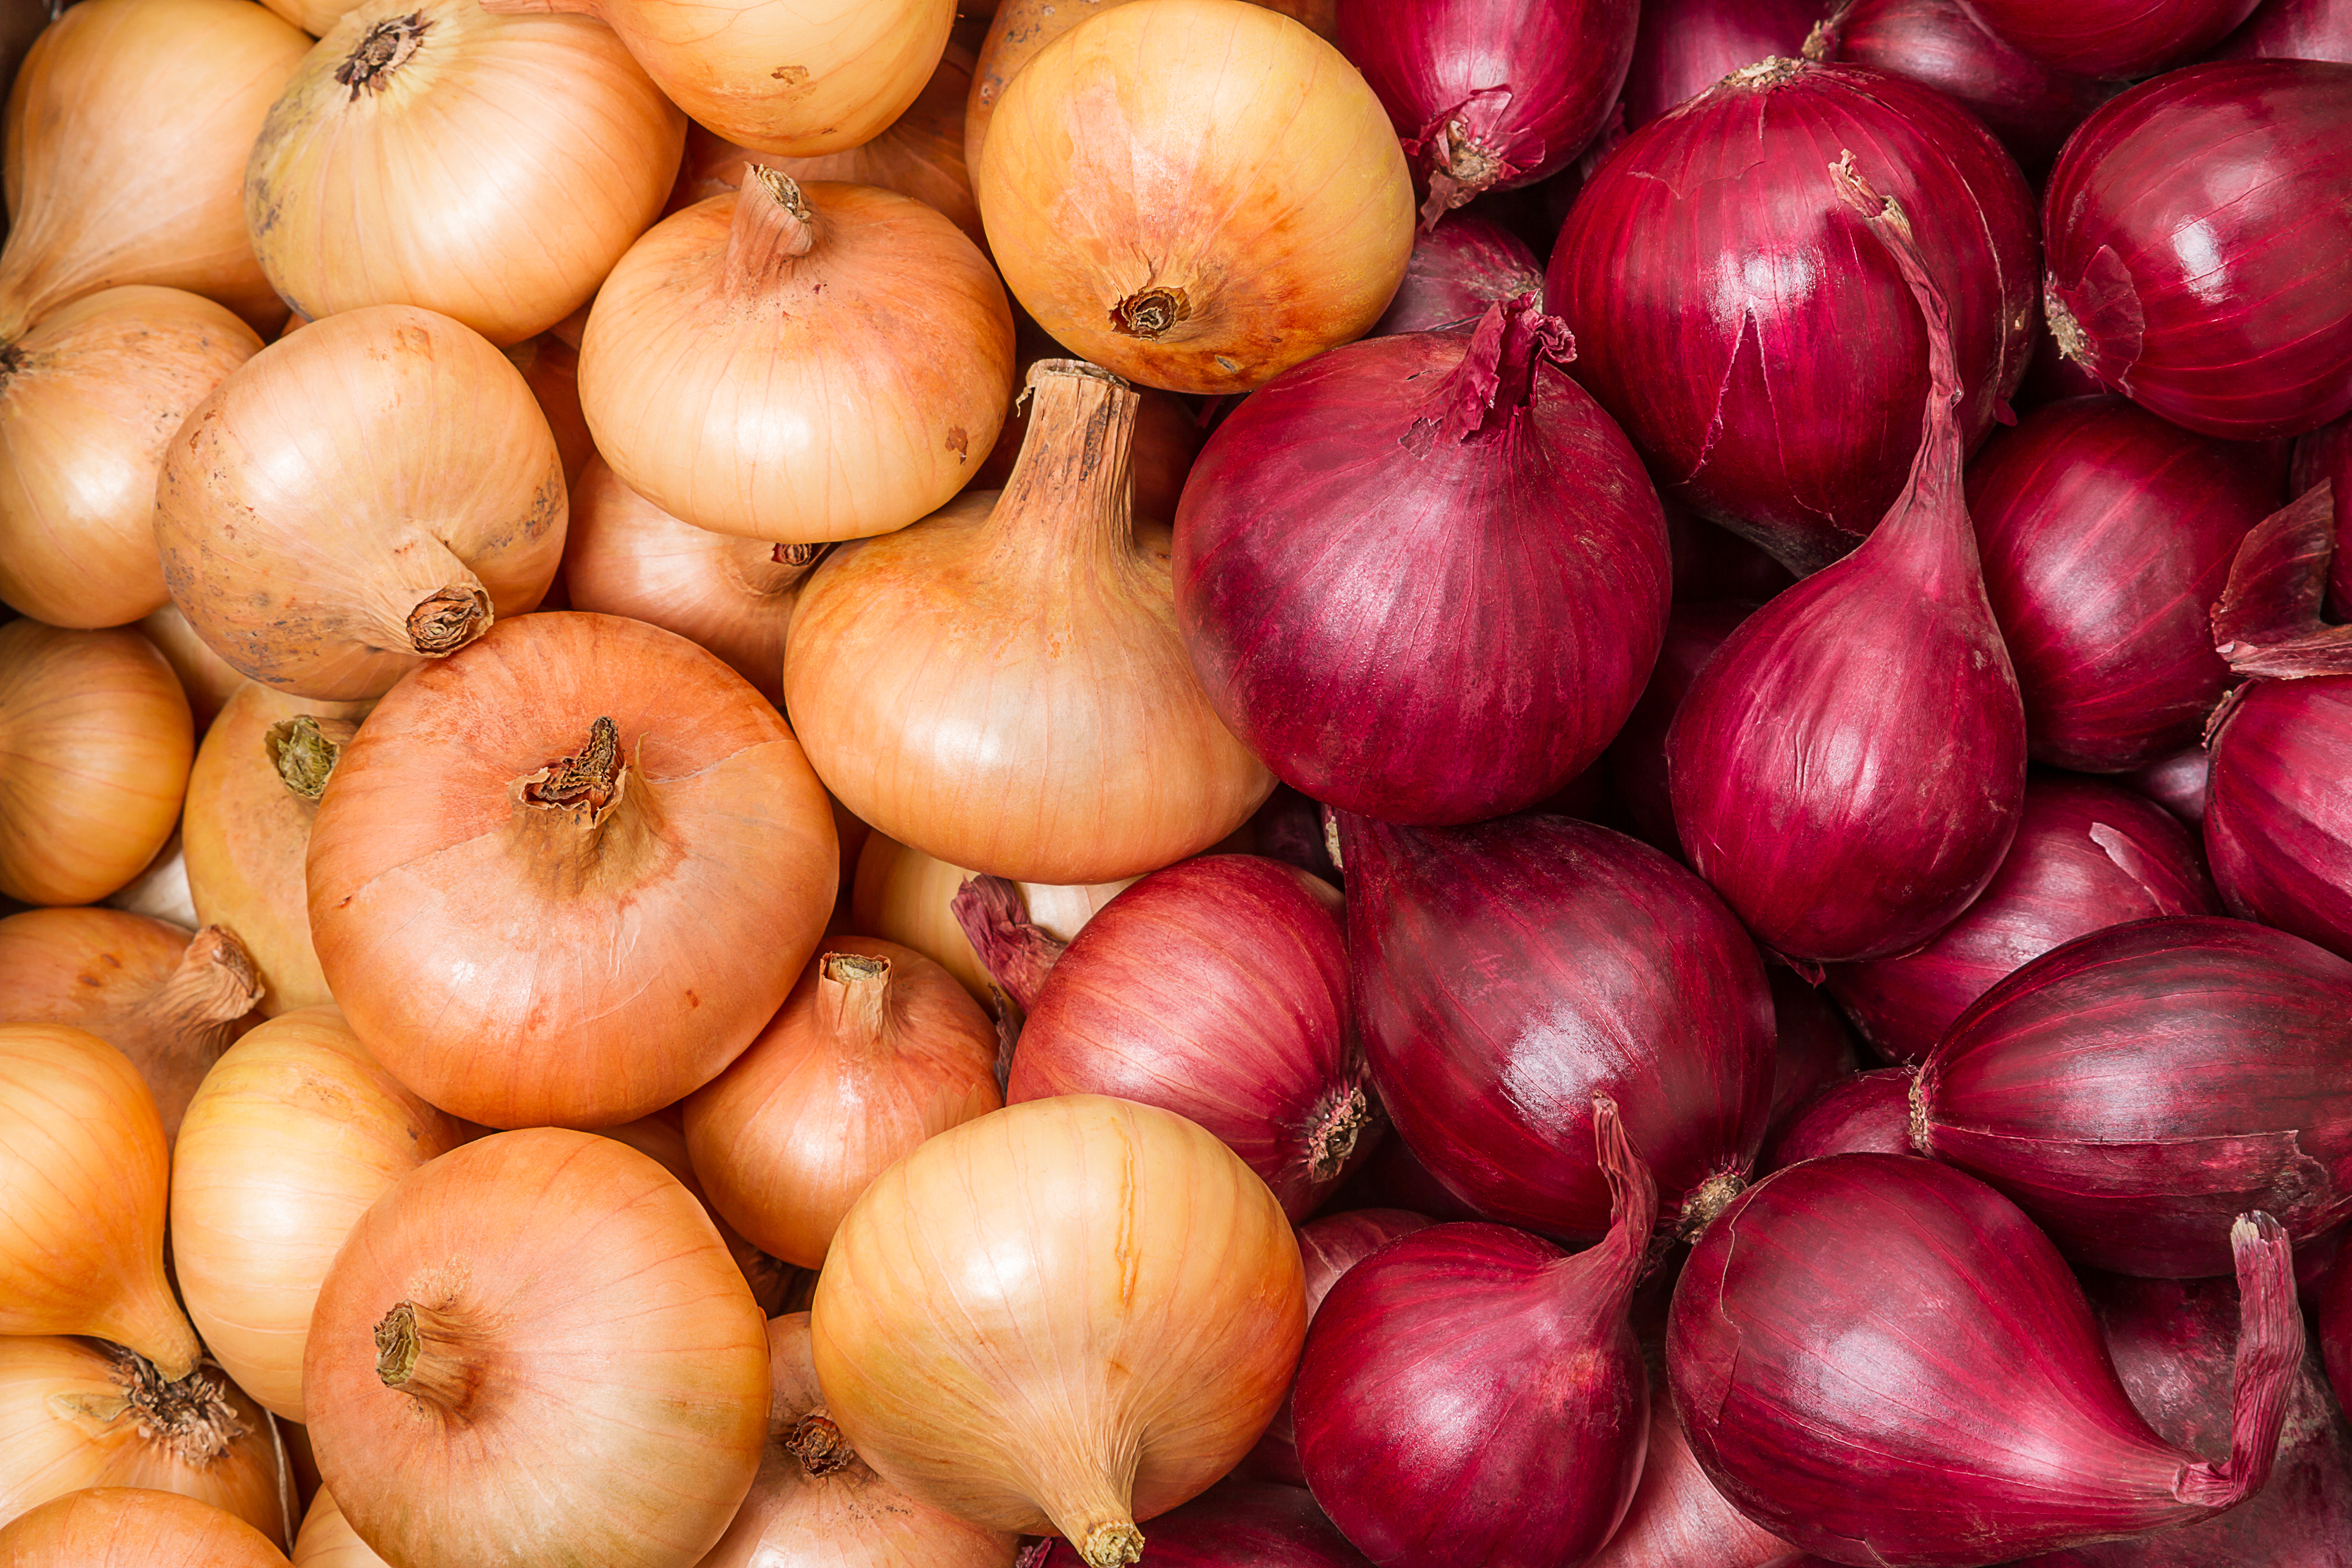 Red and yellow onions in a big pile.